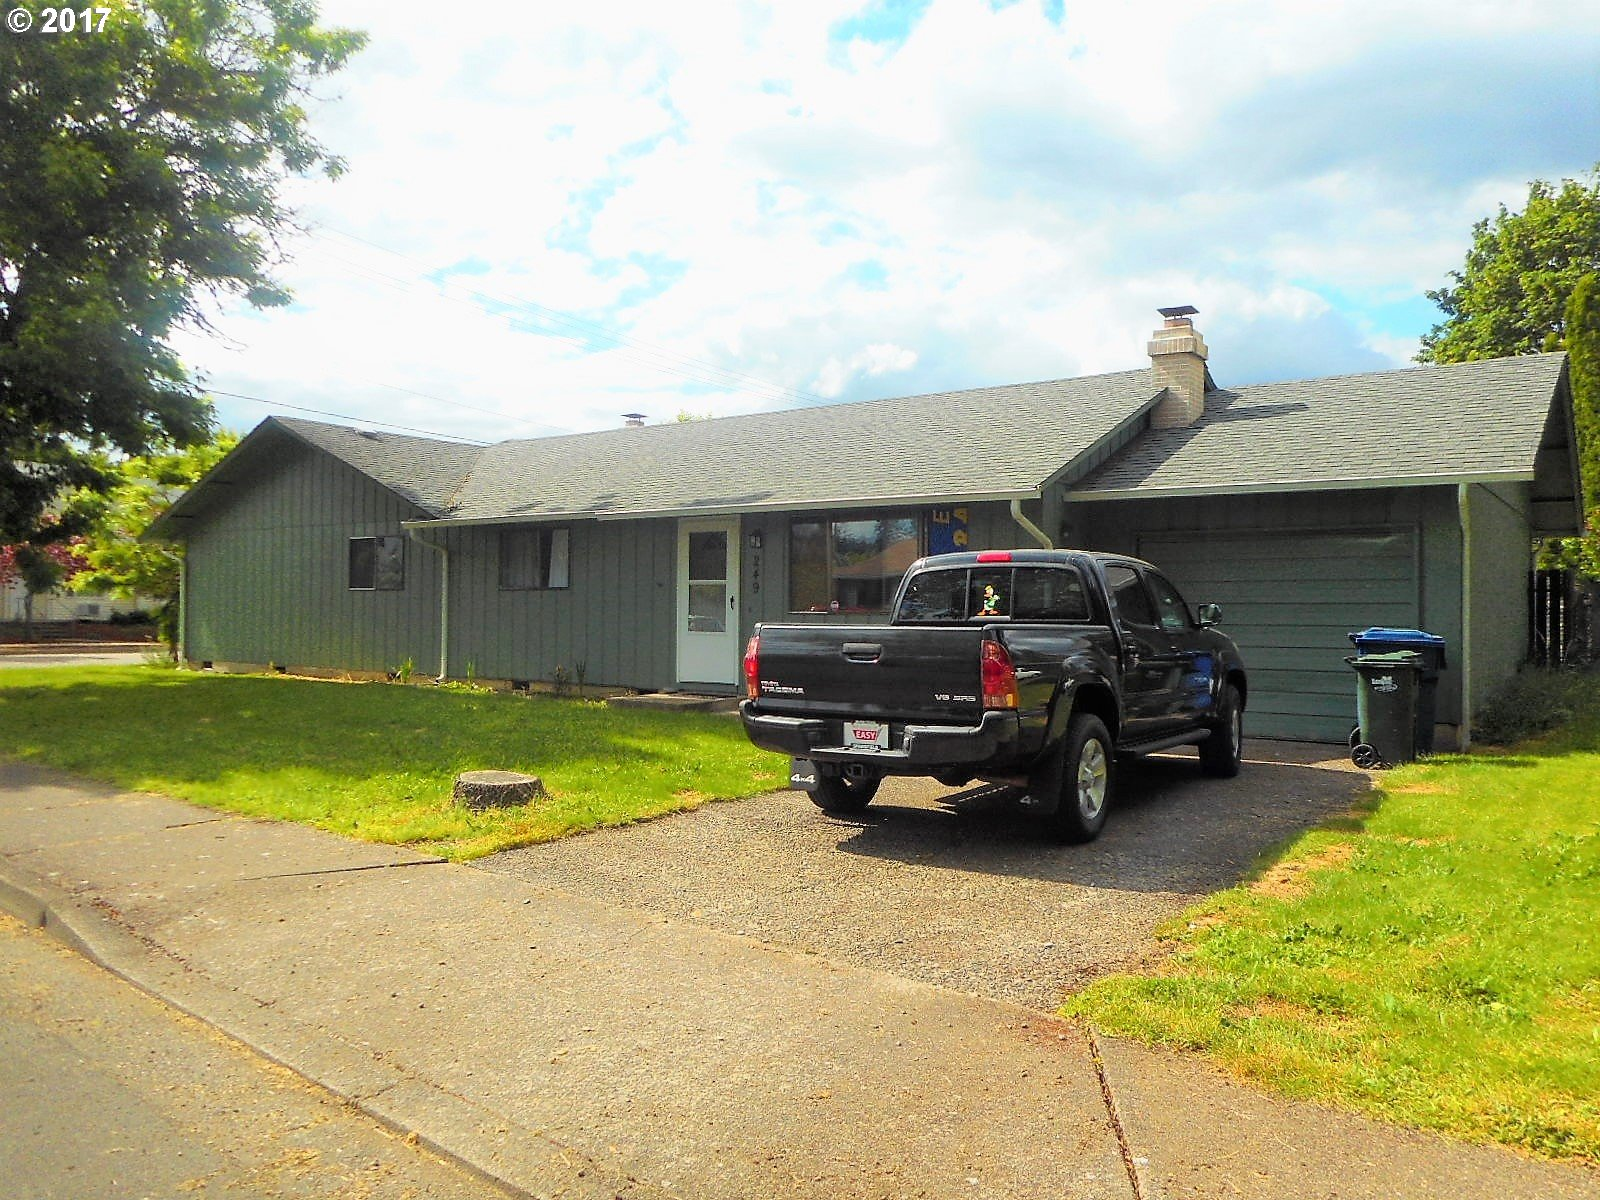 247 S 49TH PL, Springfield, OR 97478